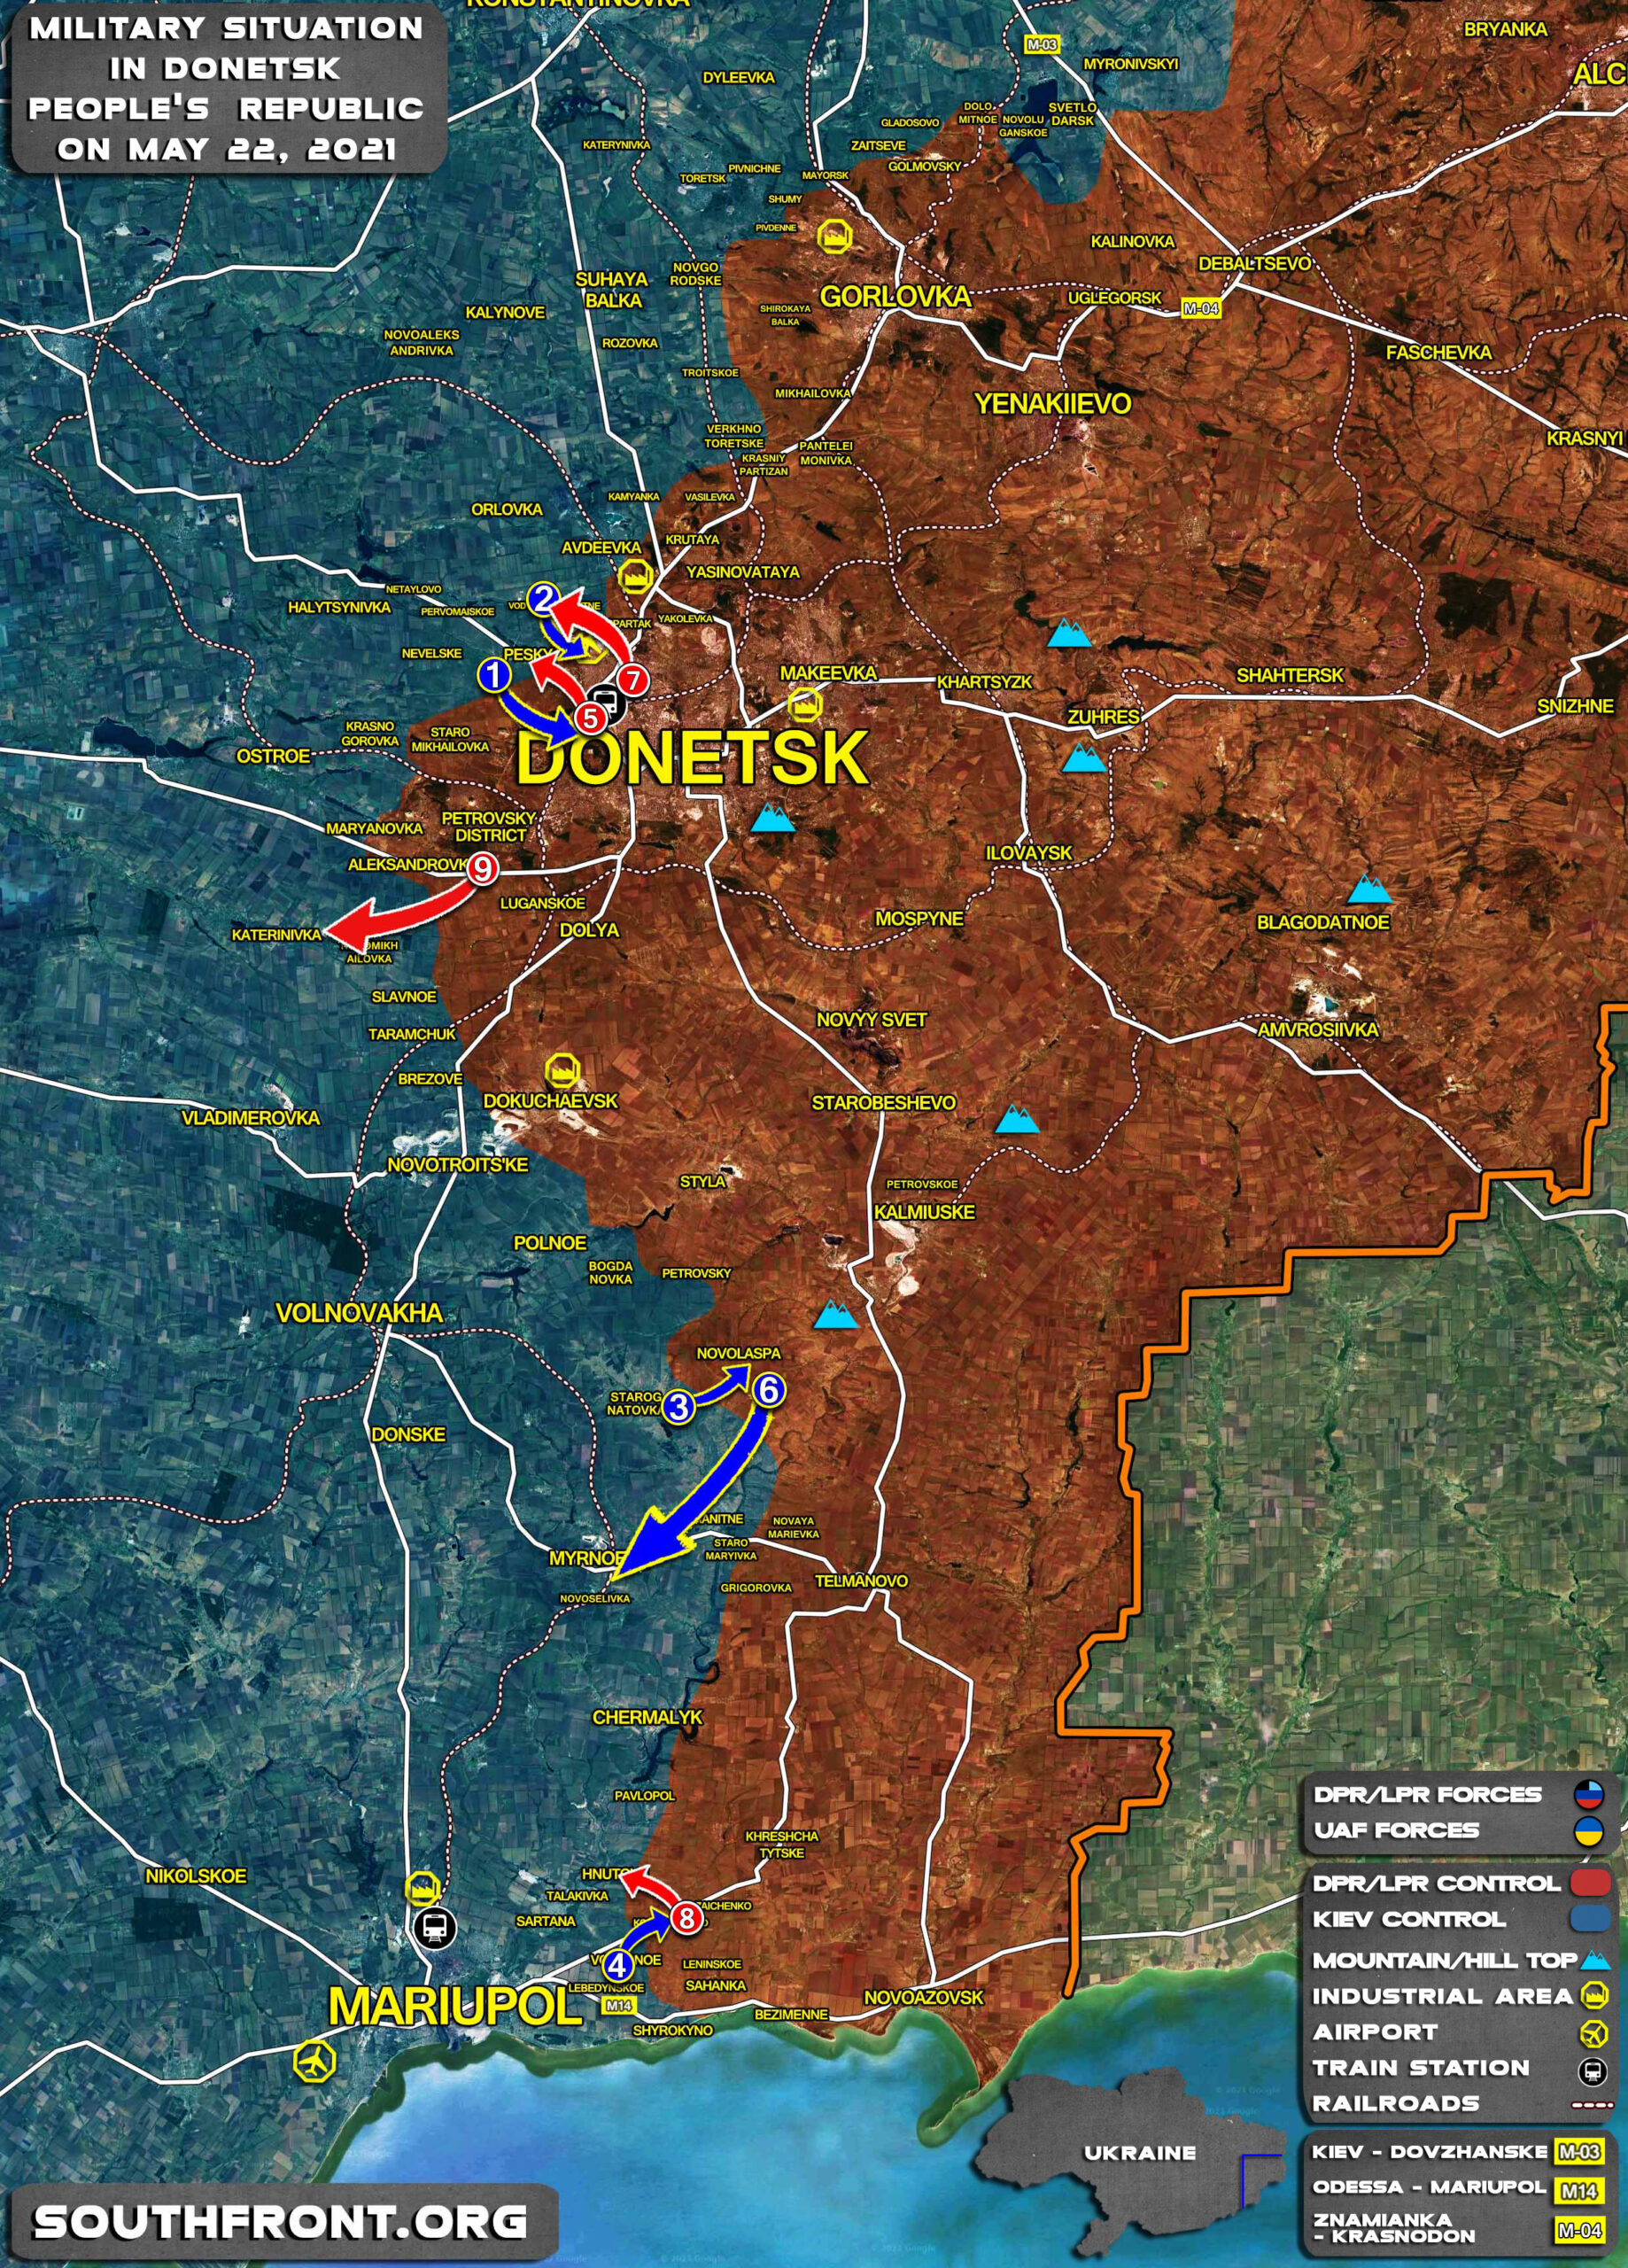 Military Situation In Donetsk People's Republic On May 22, 2021 (Map Update)